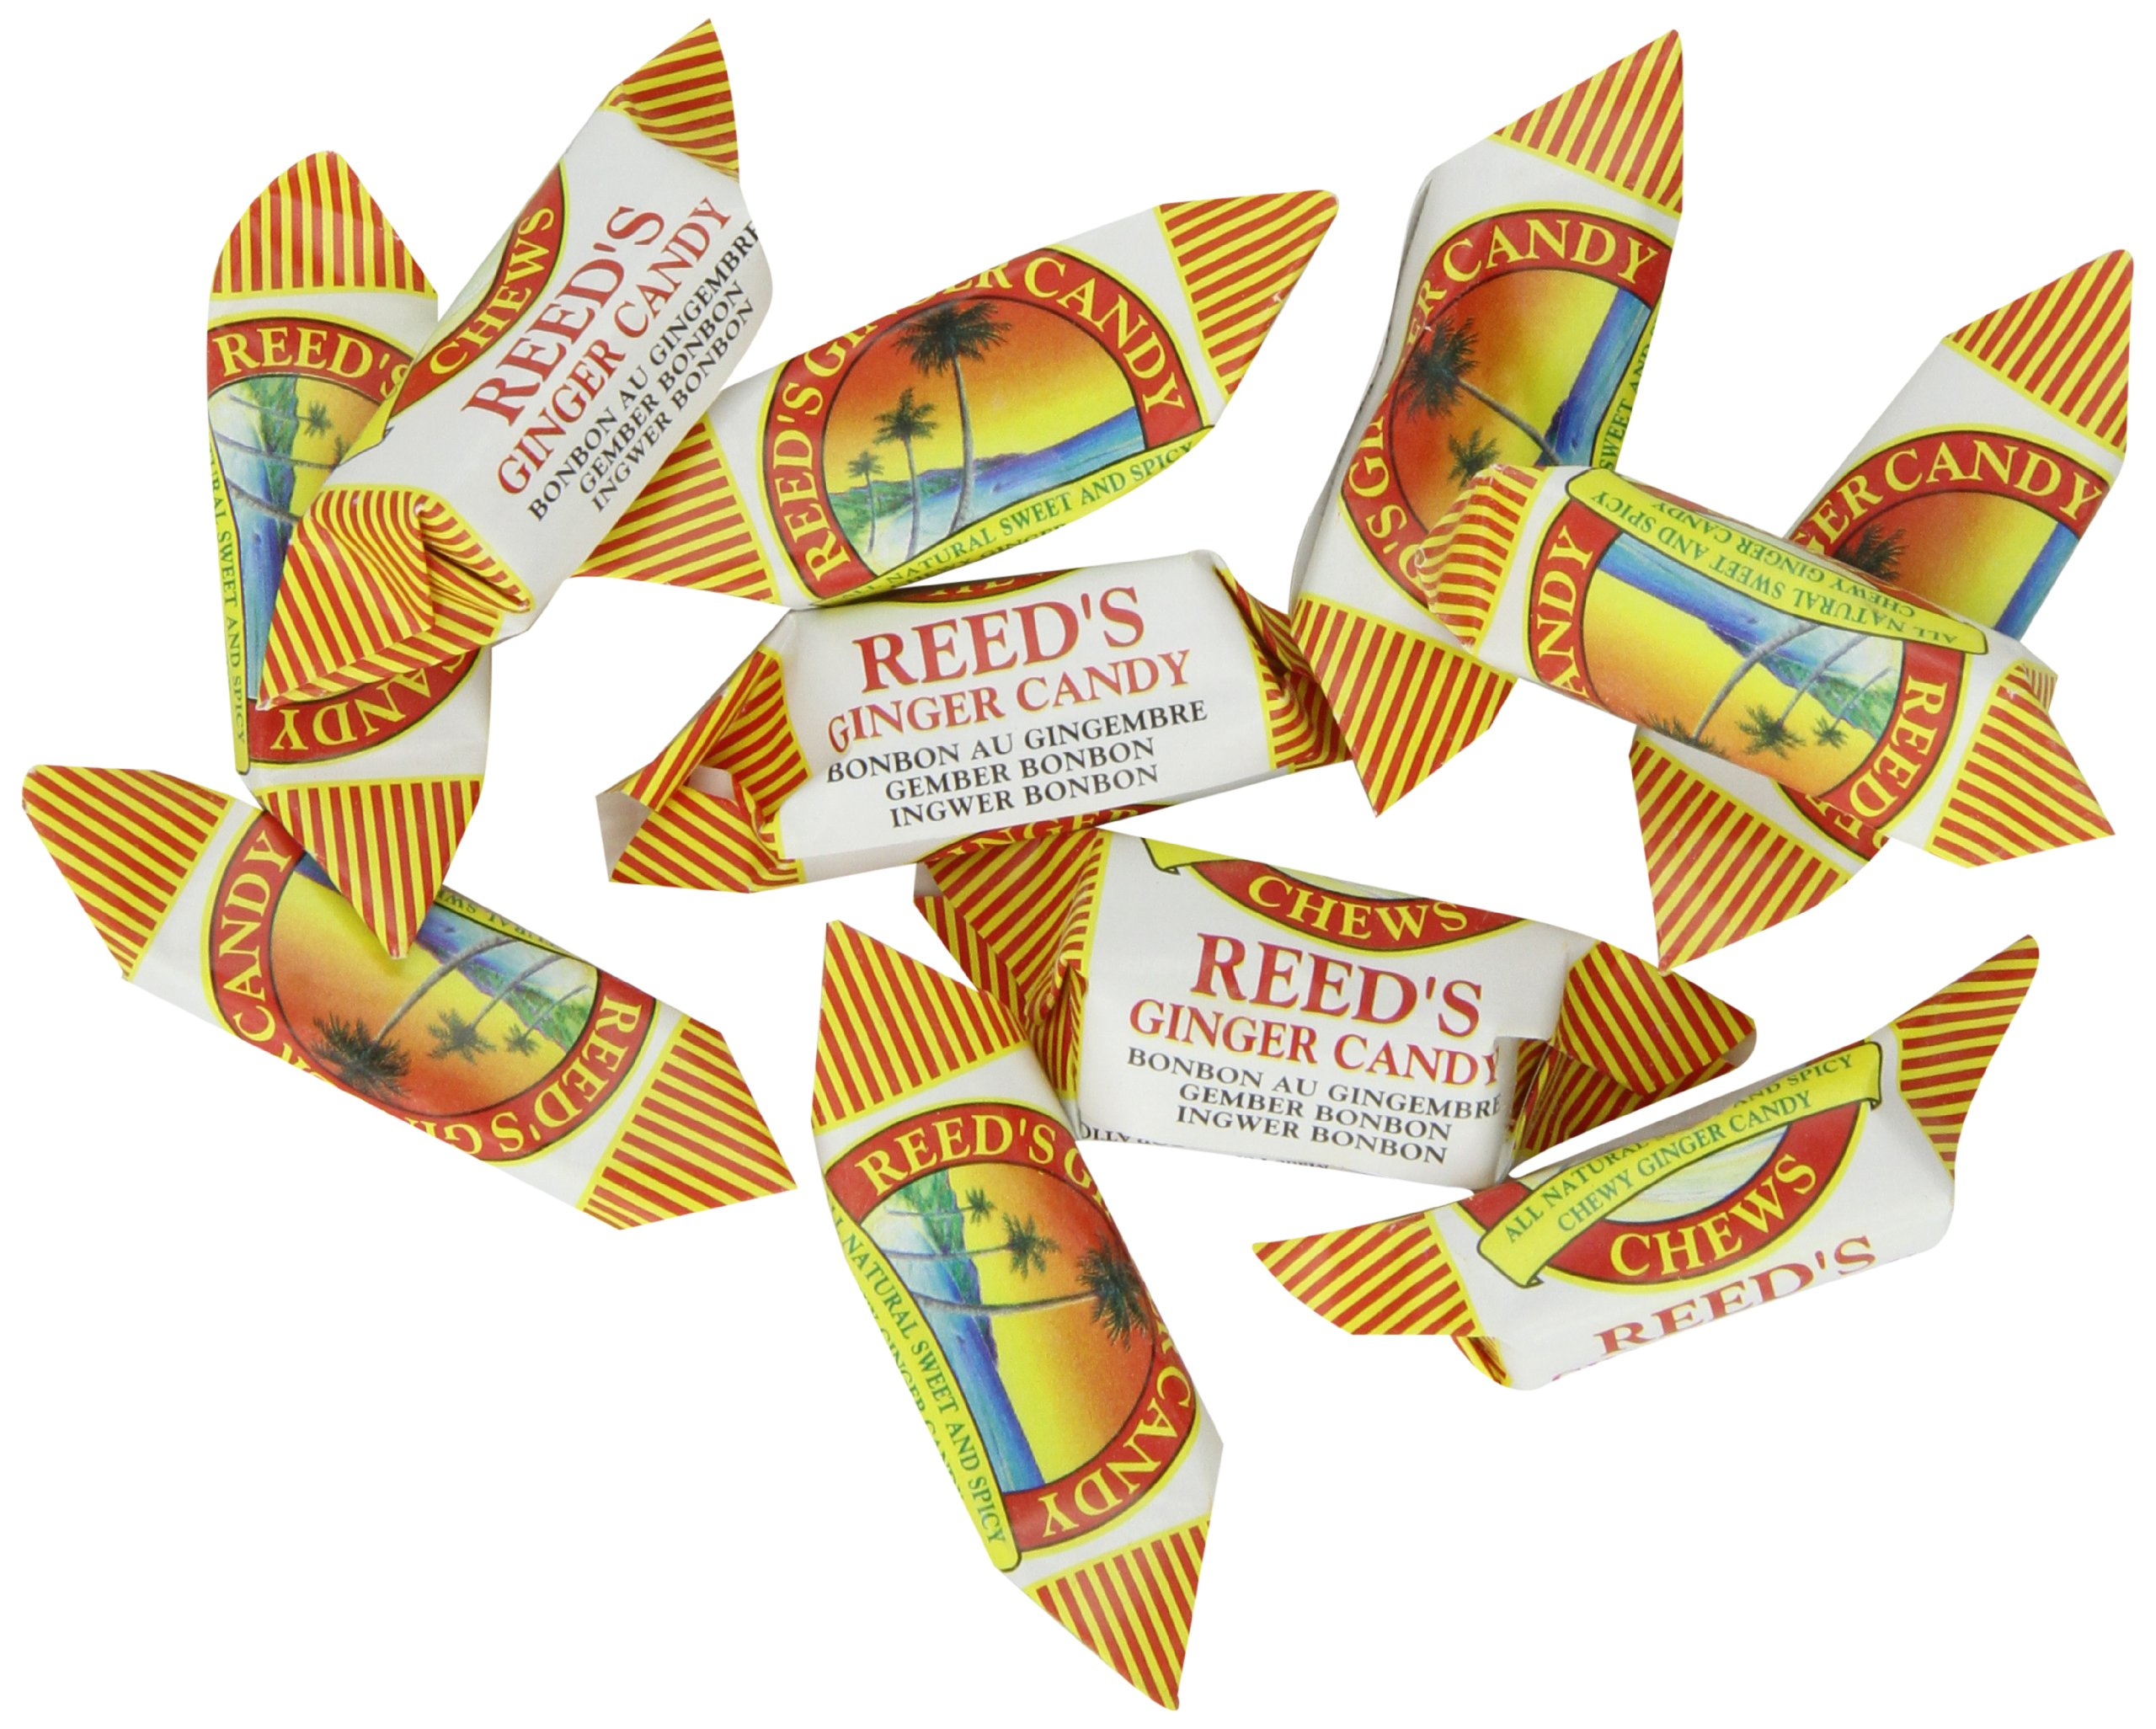 Reed's Ginger Candy Chews, 11 Pound by Reeds